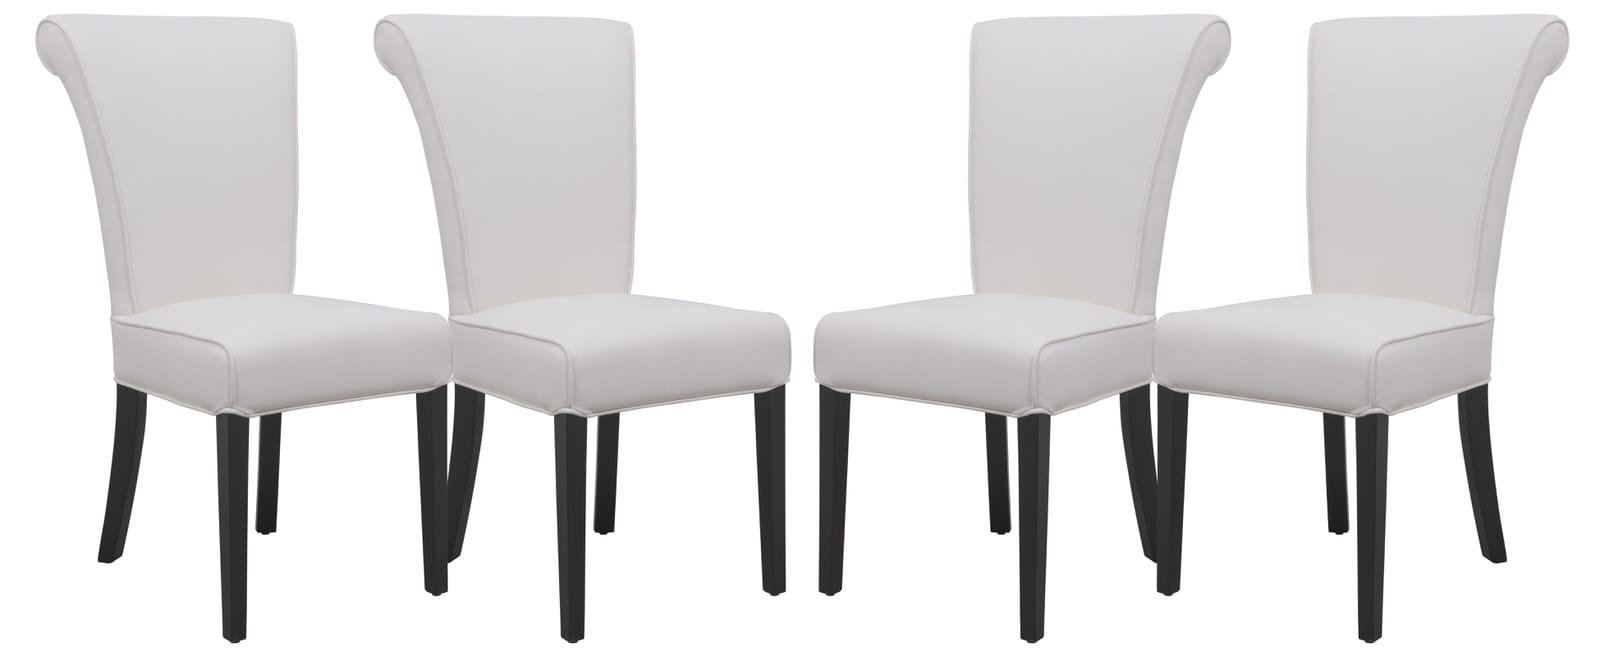 Cool Eden Contemporary Faux Leather White Dining Chair Set Of 4 By Leisuremod Creativecarmelina Interior Chair Design Creativecarmelinacom